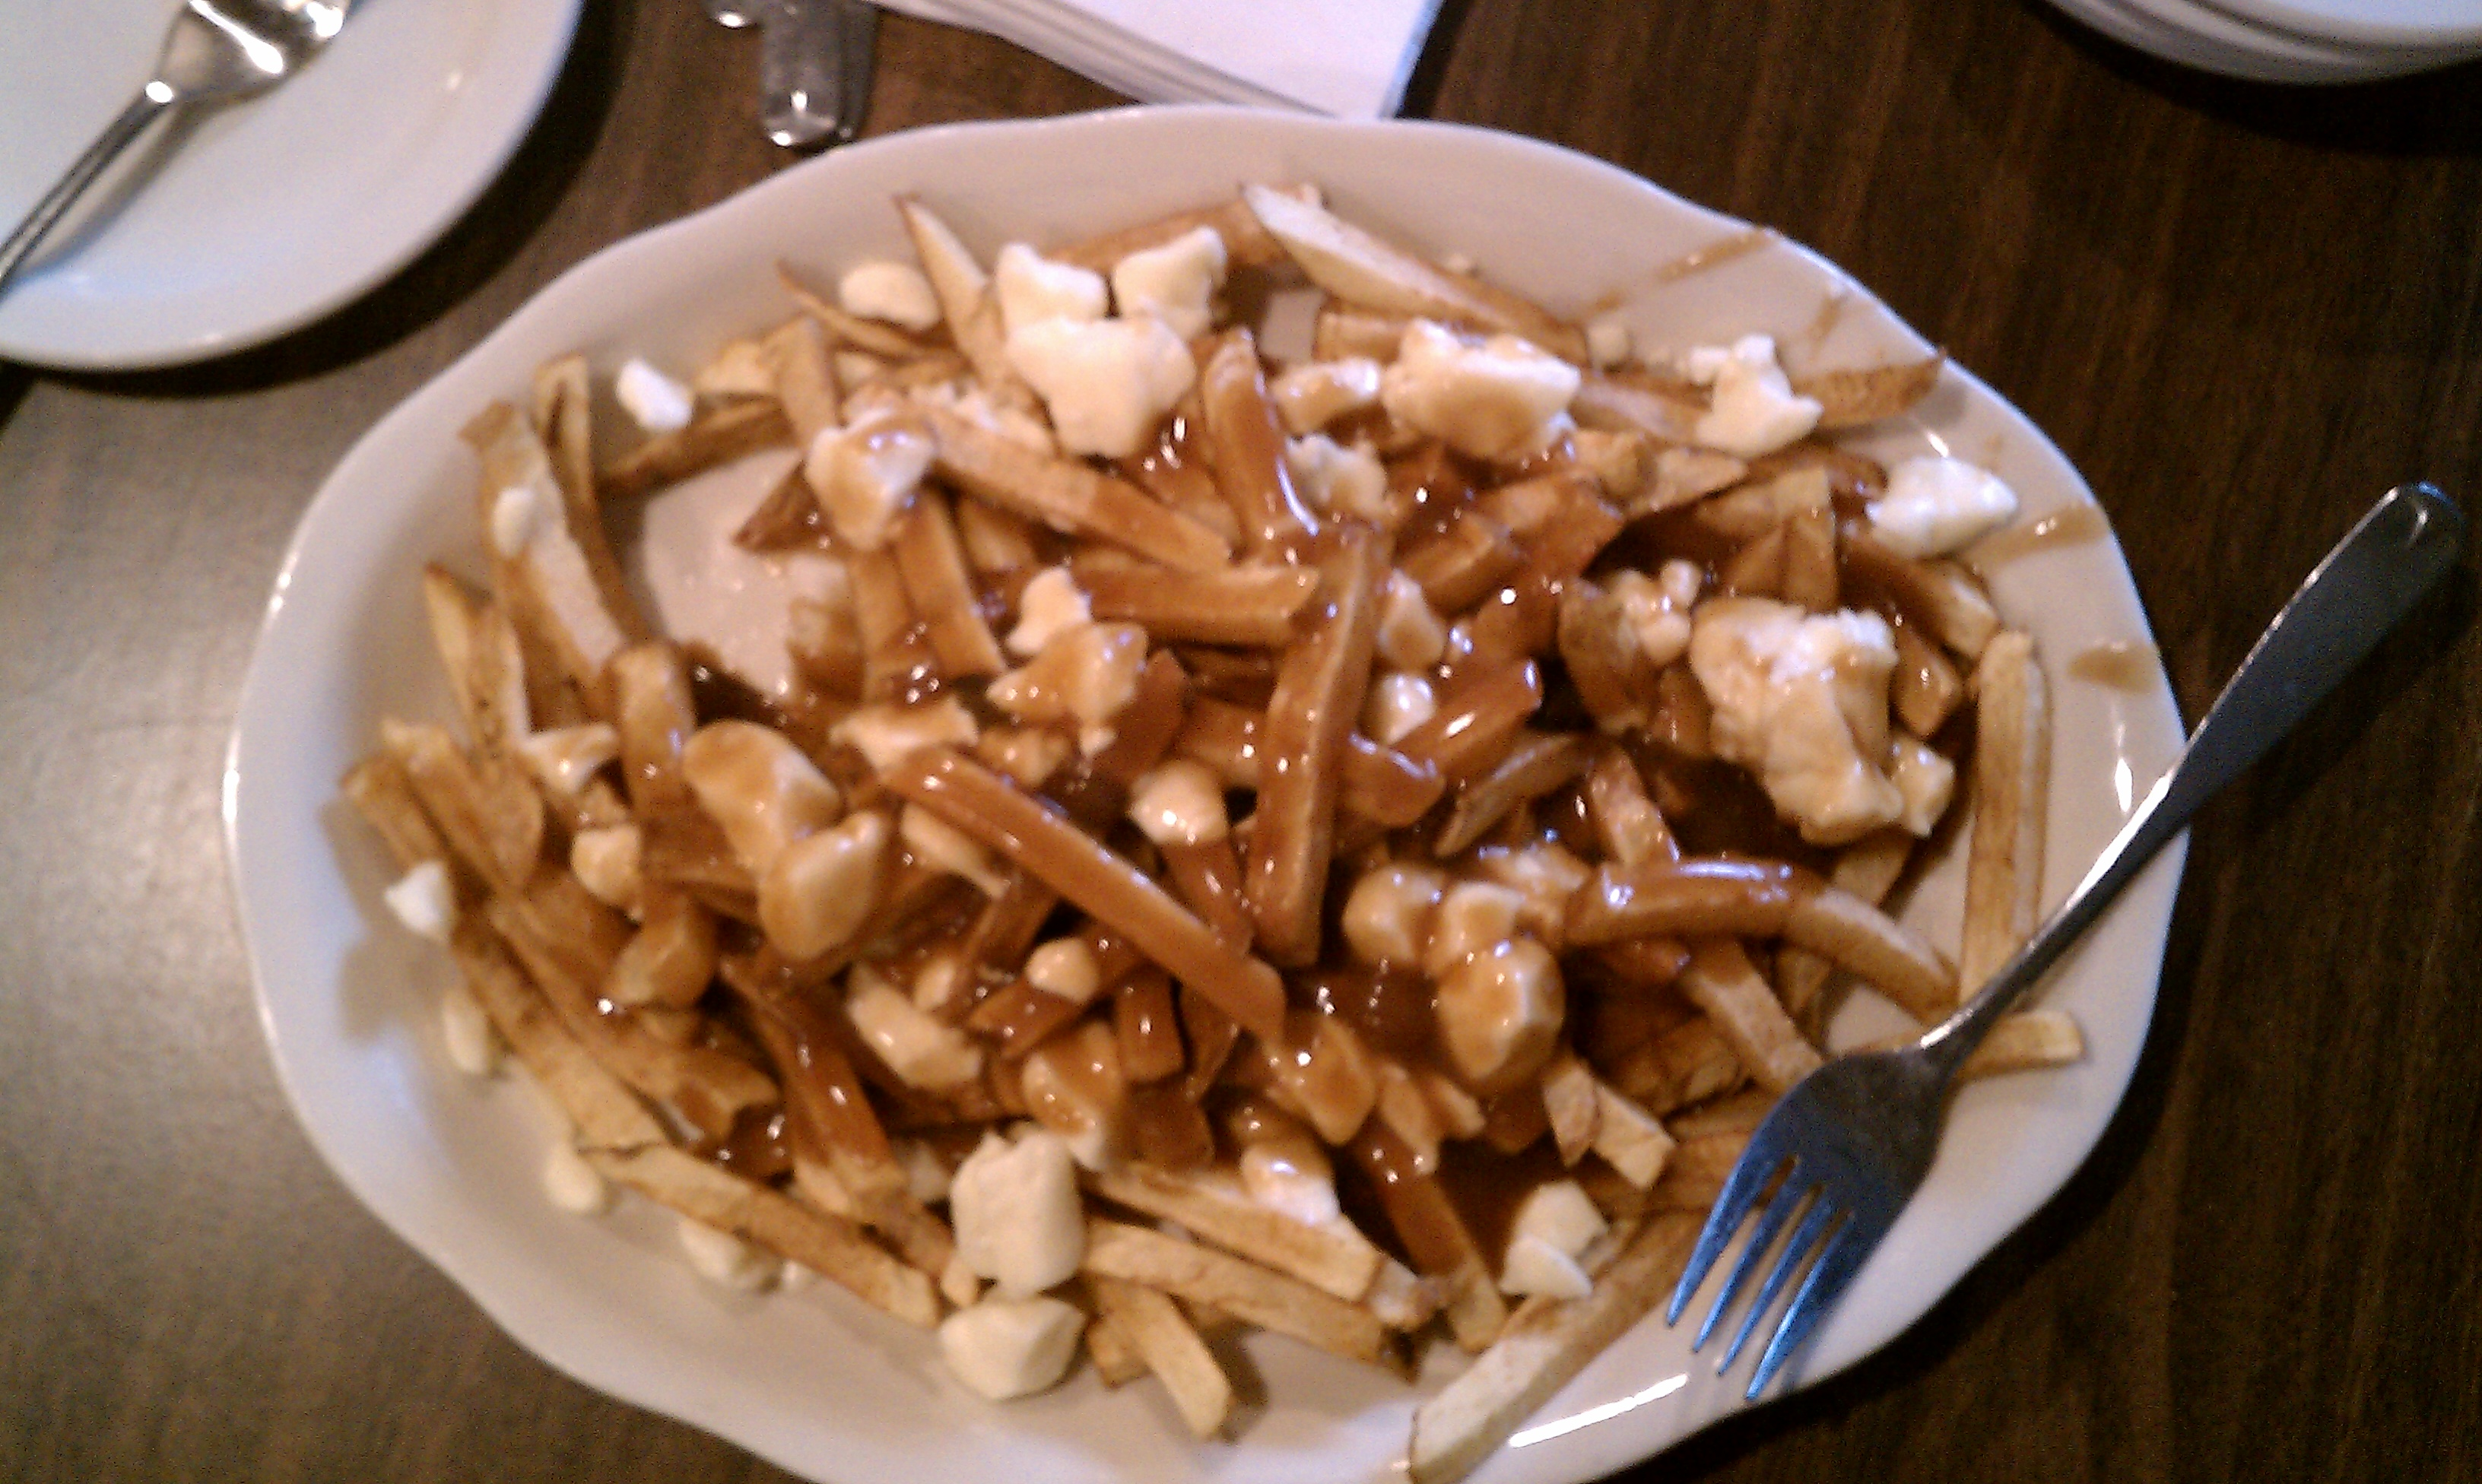 medford, ma :: poutine with local squeaky cheese from Spa restaurant near Canaan, vt